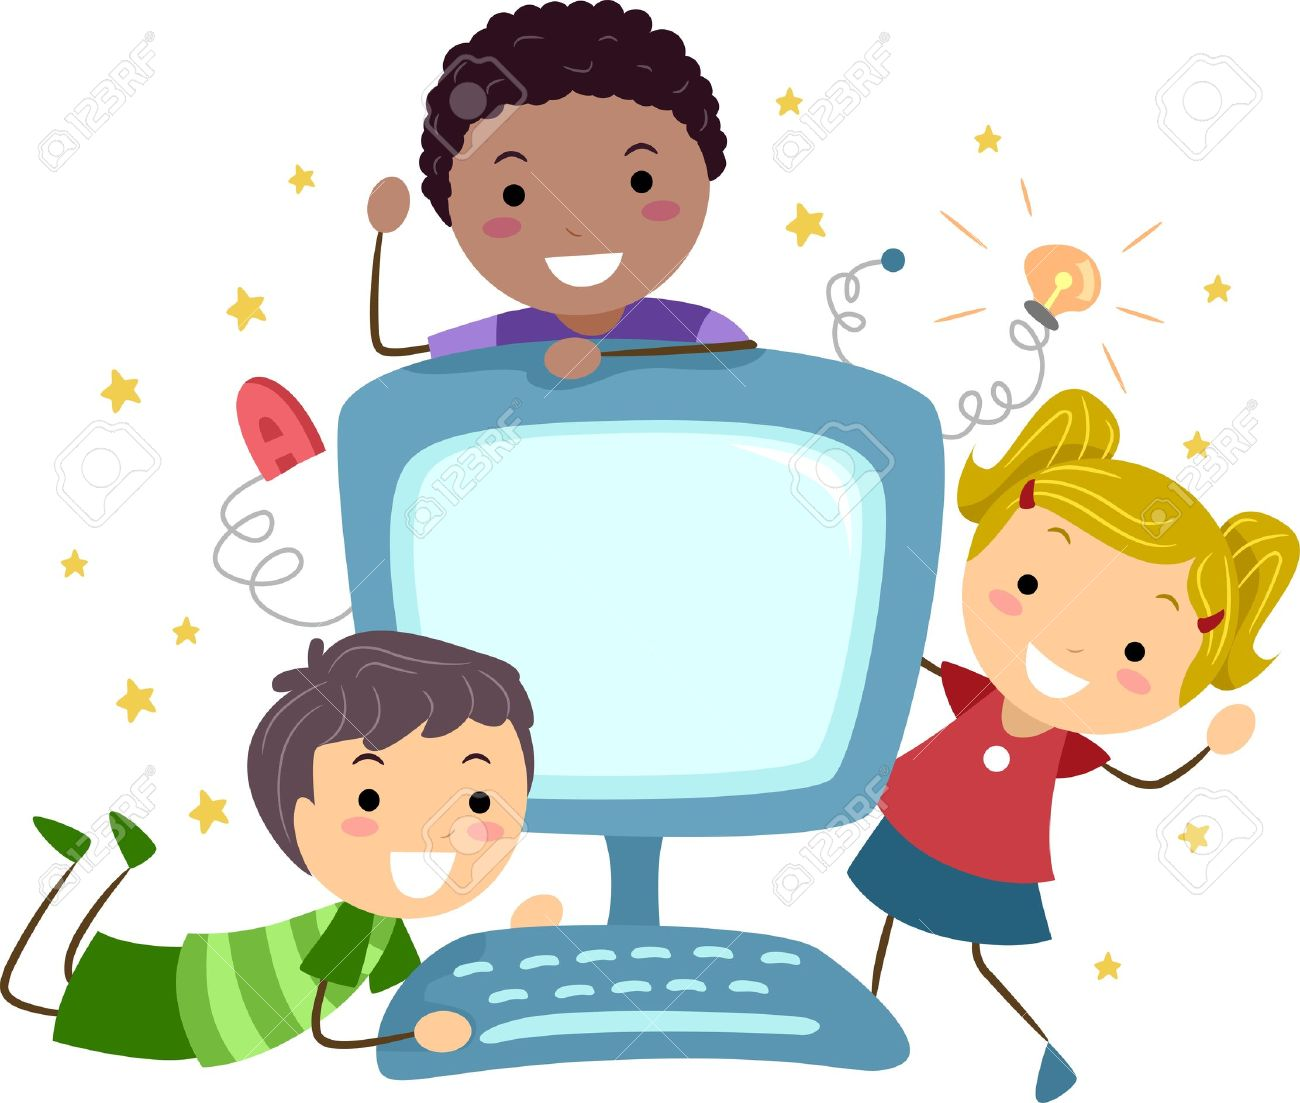 Kids At Computer Clipart.